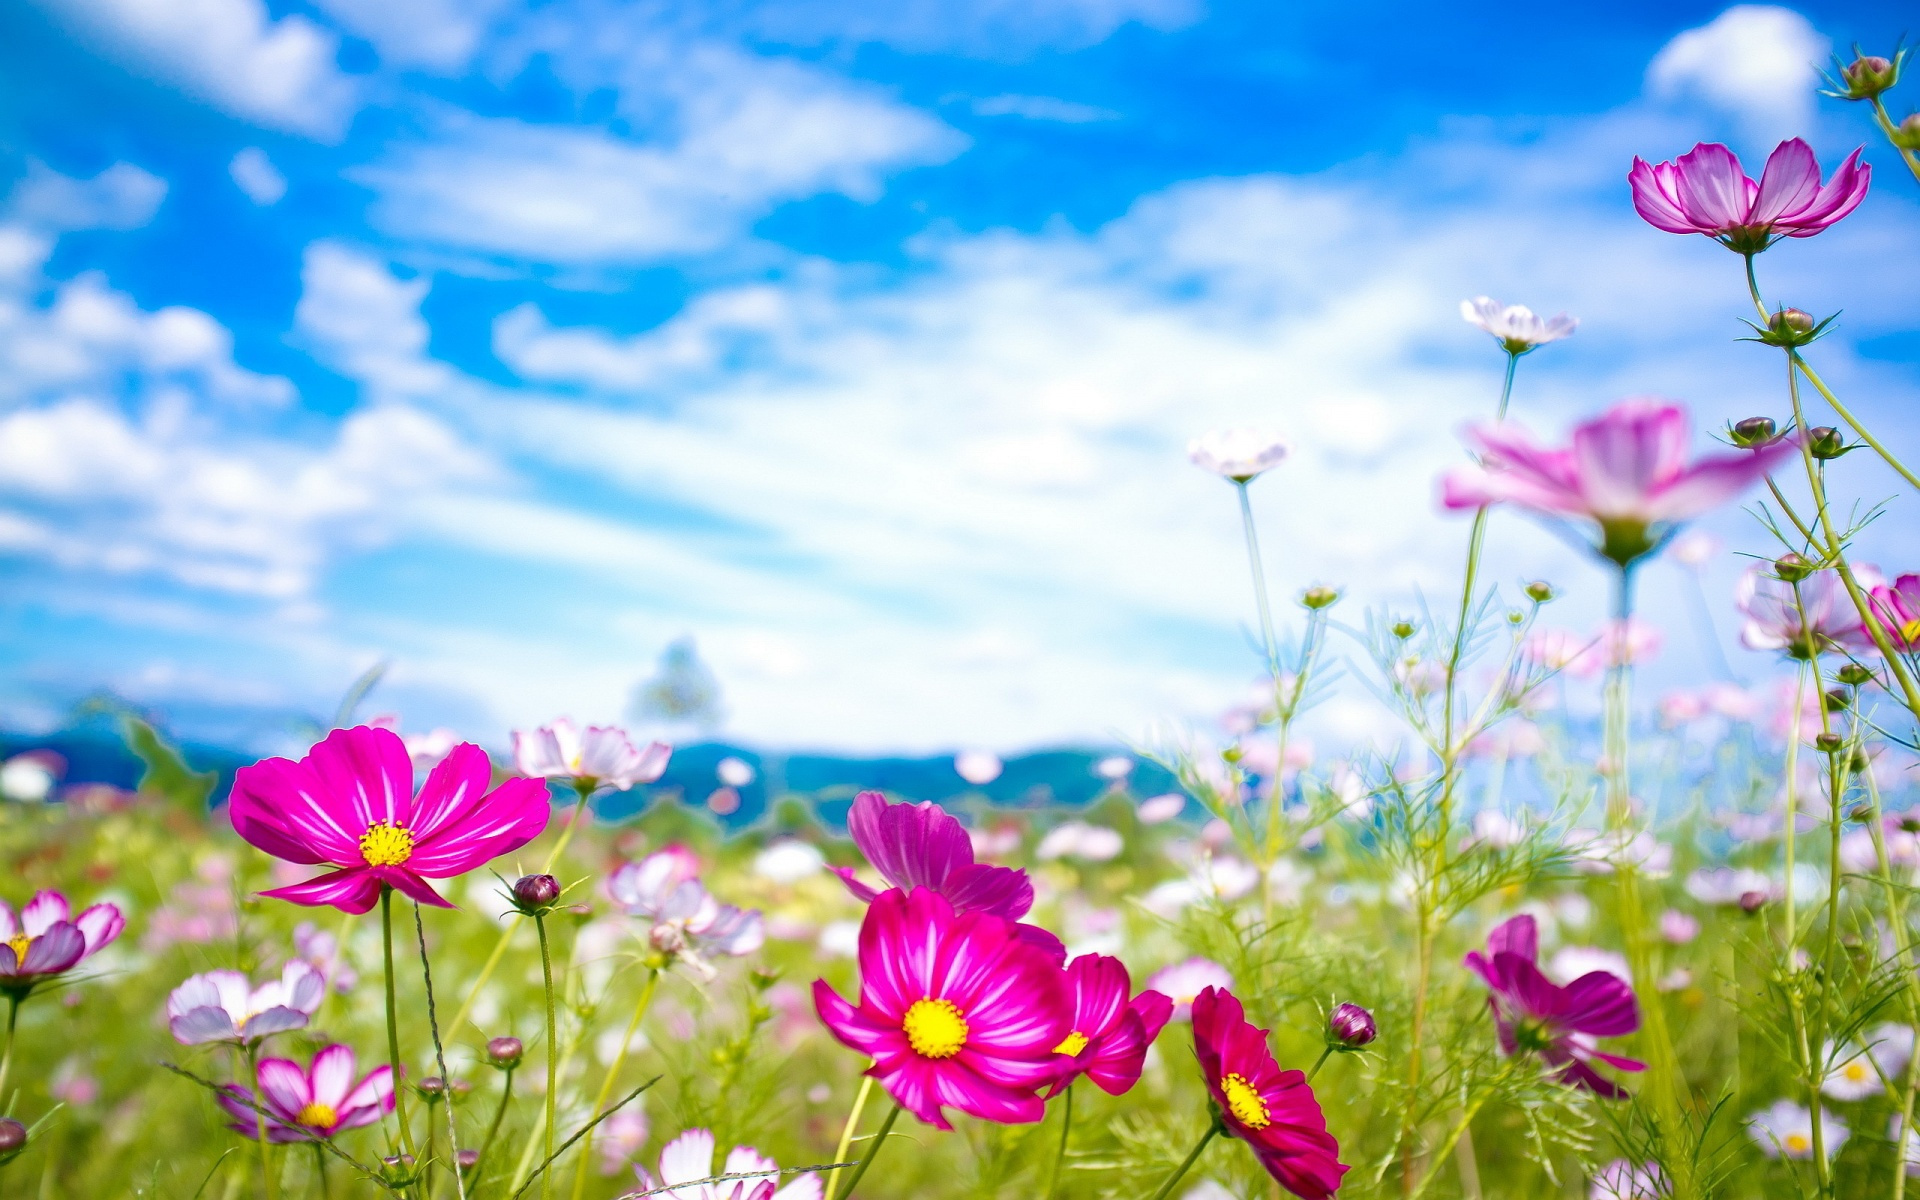 Pink Flowers Summer HD Wallpaper Widescreen ImageBankbiz 1920x1200